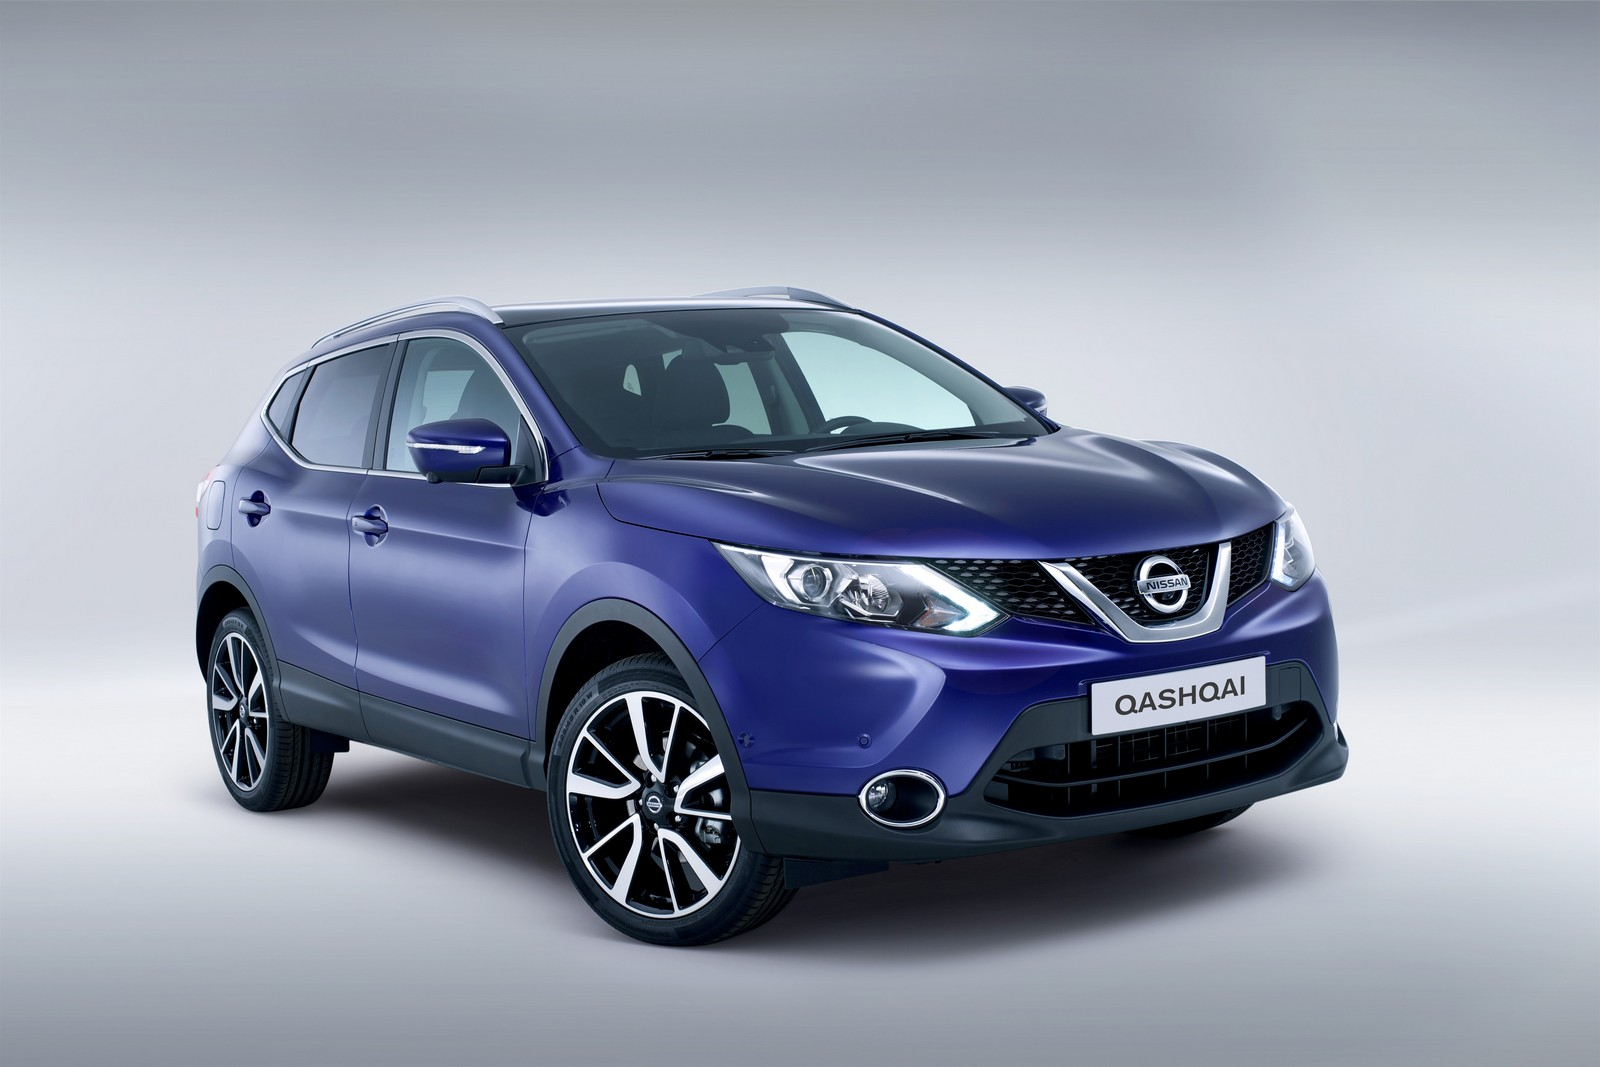 2015 Nissan Qashqai Vs Rogue | Car Interior Design